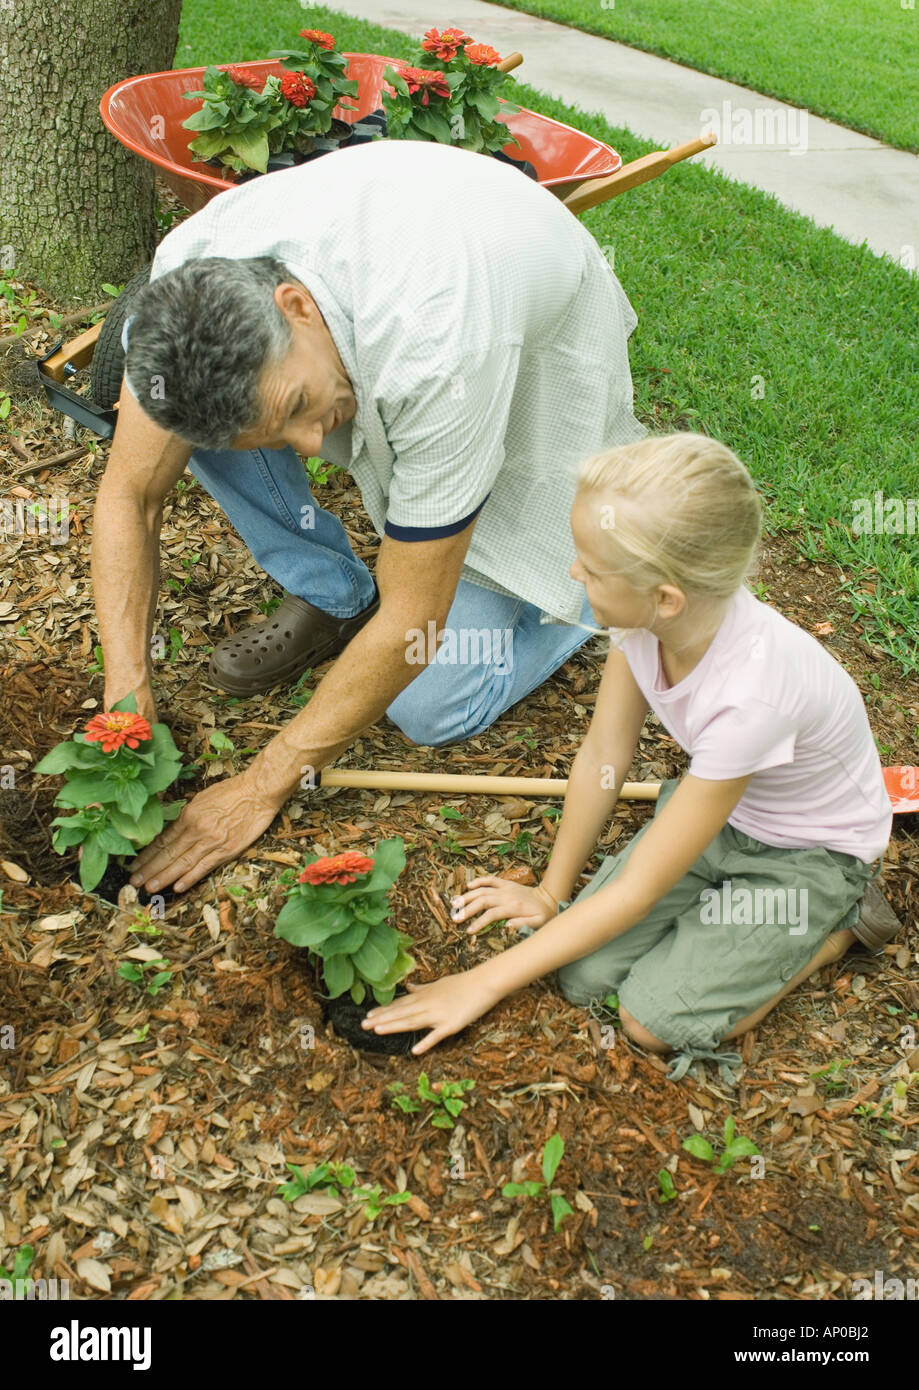 Man and girl planting flowers in yard together - Stock Image